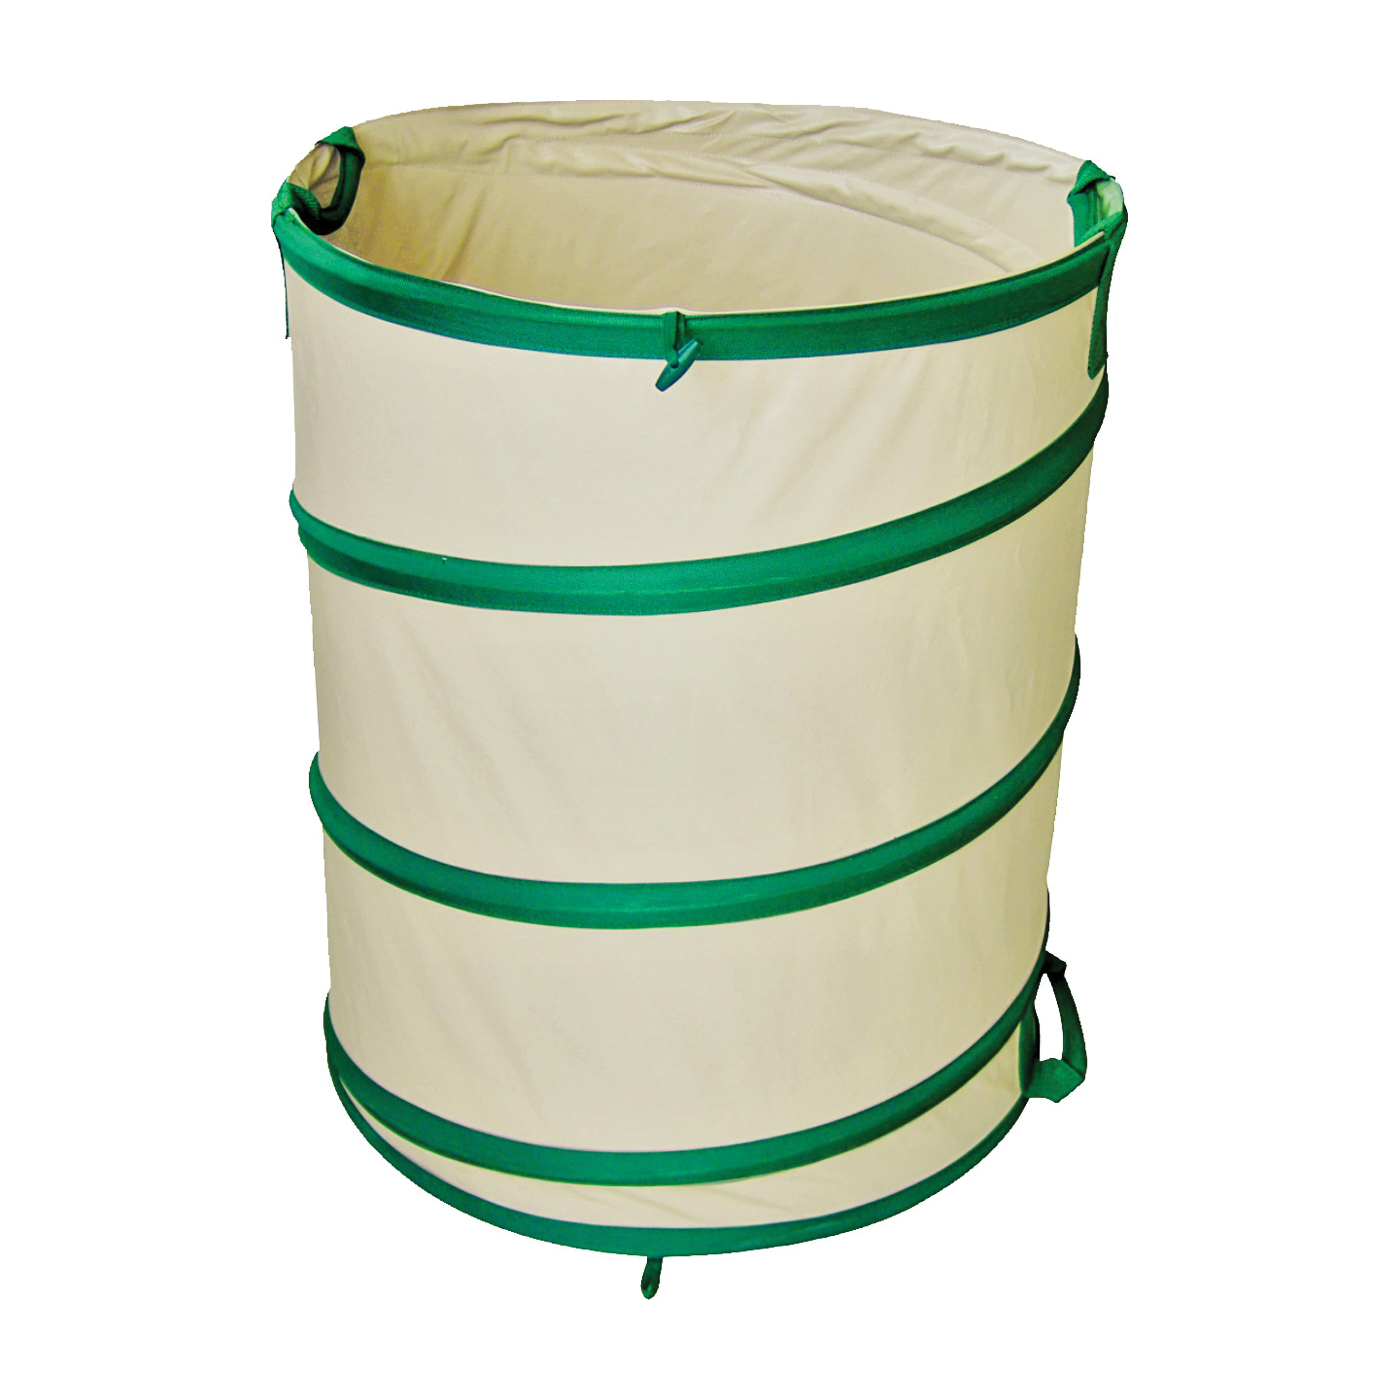 Picture of Landscapers Select GB-6001-3L Garden Bag, 27 in L, 2 H x 22 Dia in, 45 gals Capacity, PVC, Beige